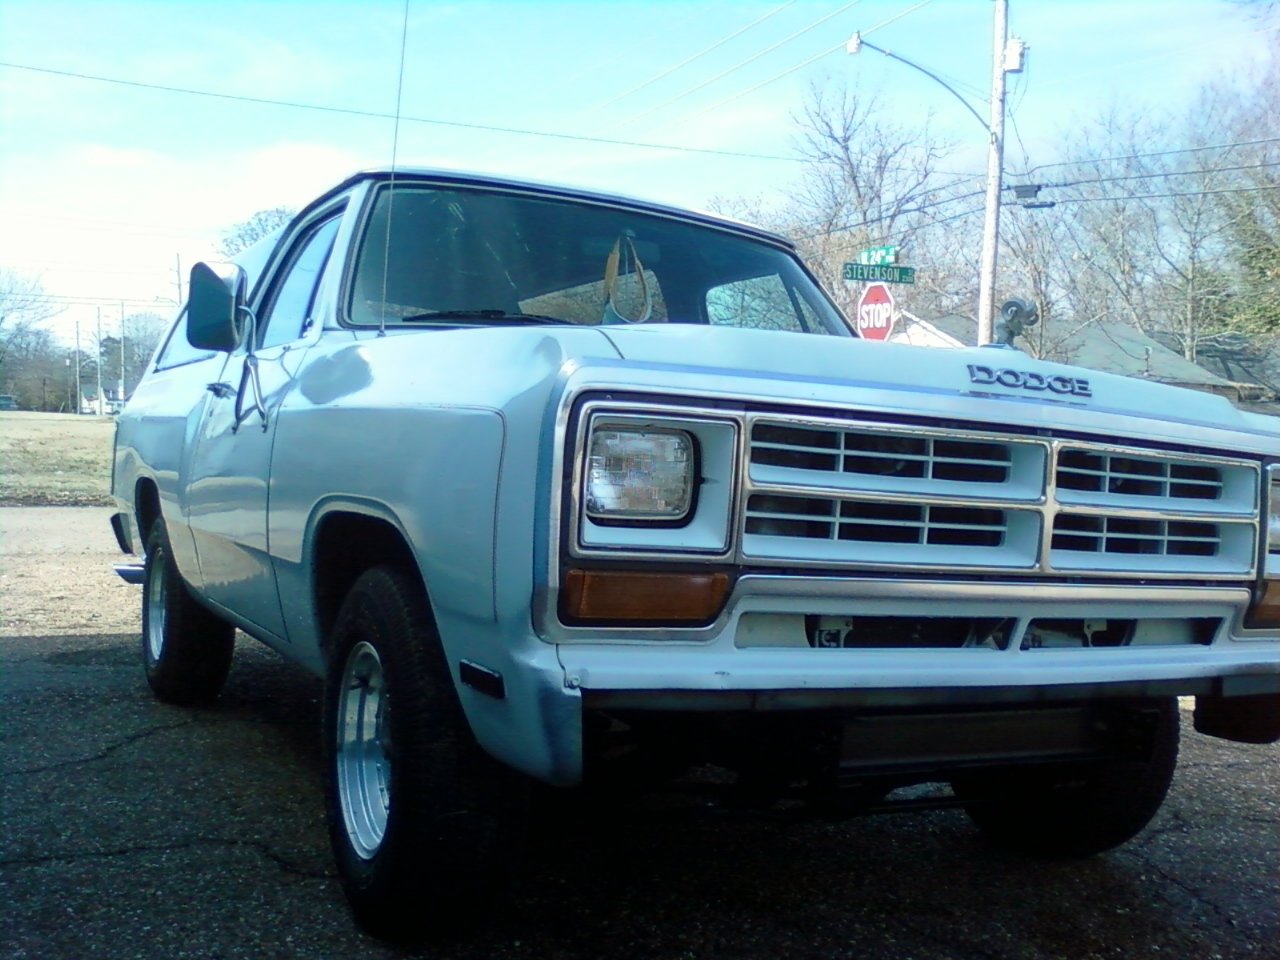 Dodge Ram With 22 Inch Rims >> Ramcharger1588 1985 Dodge Ramcharger Specs, Photos, Modification Info at CarDomain